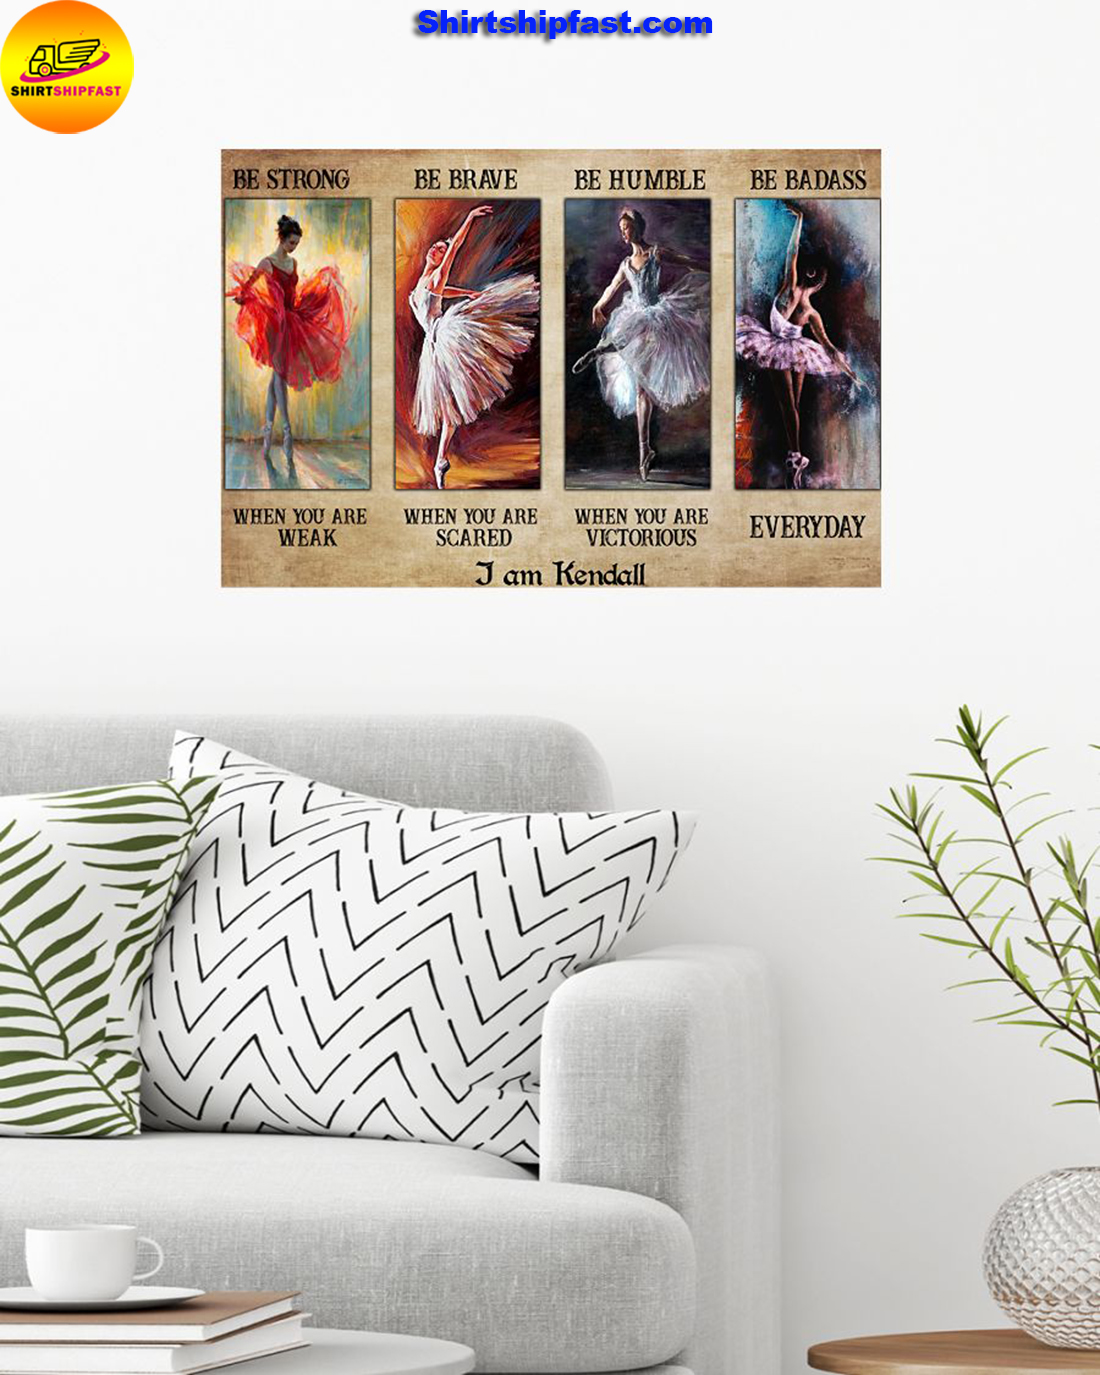 Ballet be strong be brave be humble be badass personalized custom name poster